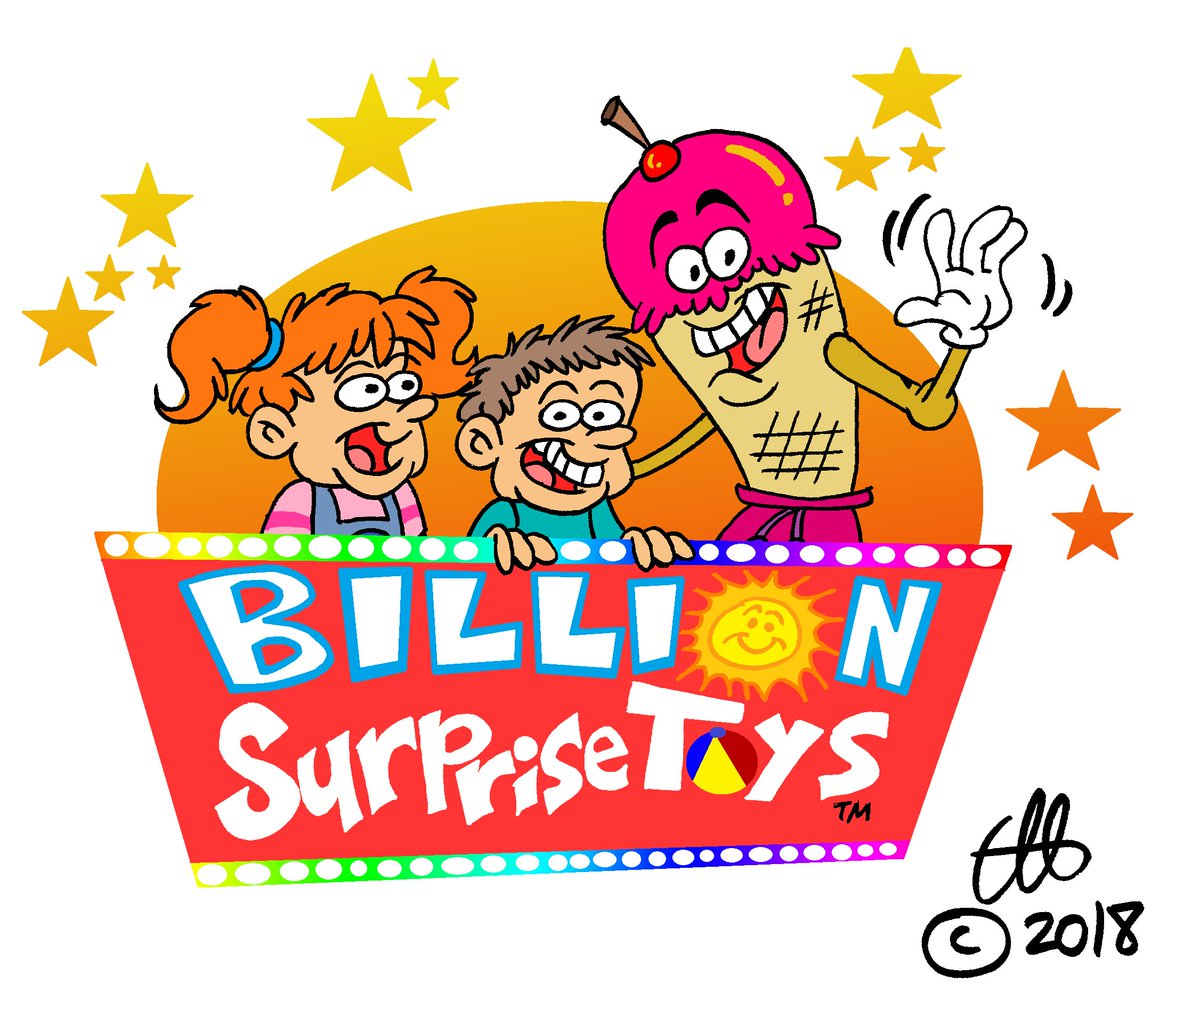 Clint Hopfe On Twitter The Billion Surprise Toys Logo Made Less